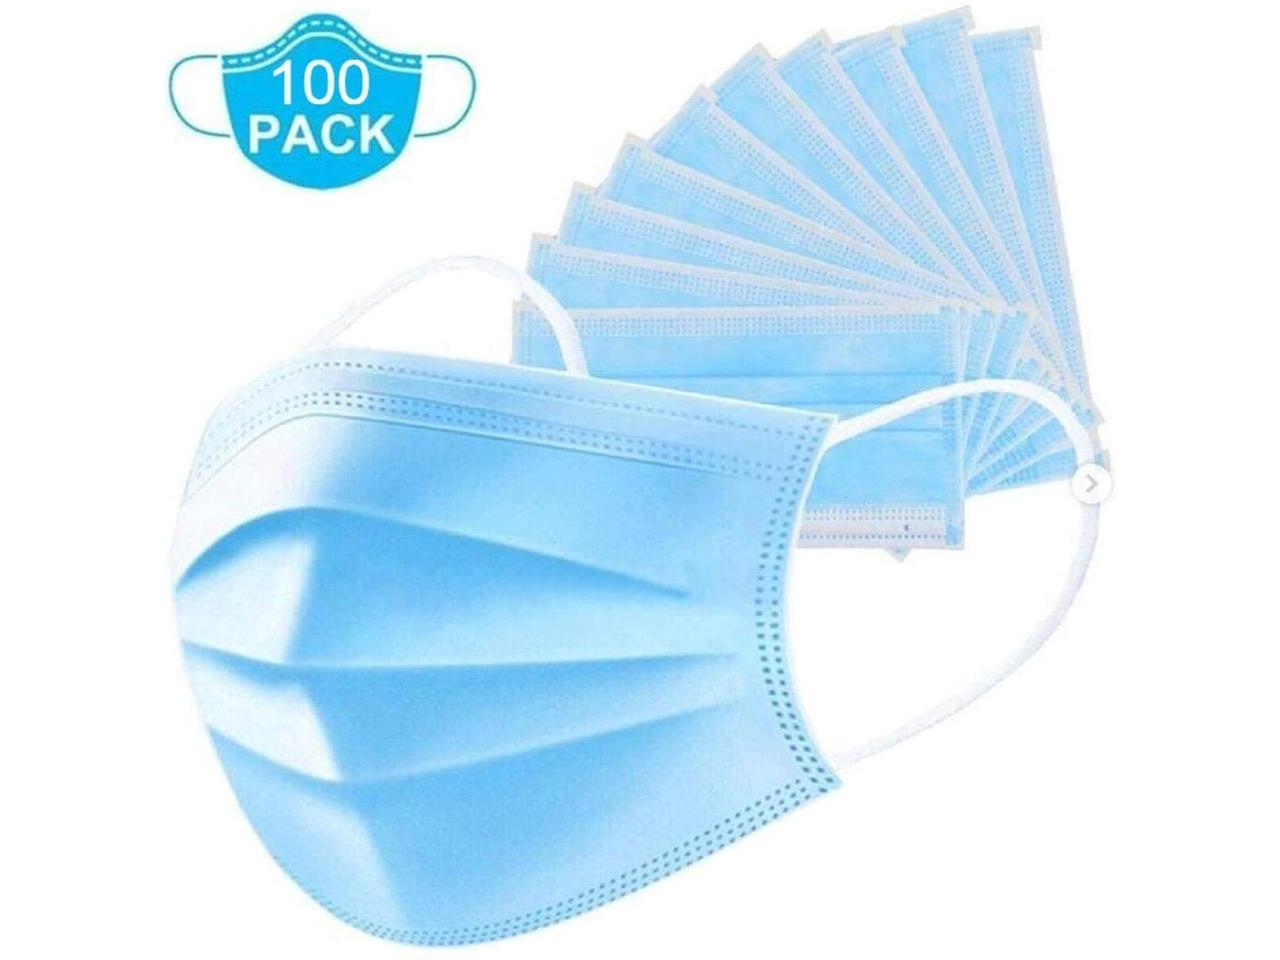 50Pcs//Box Kids Disposable Face Cover 3 Ply Non-Woven,Disposable Mouth Cover Face Shield Face Bandanas Childrens Covering